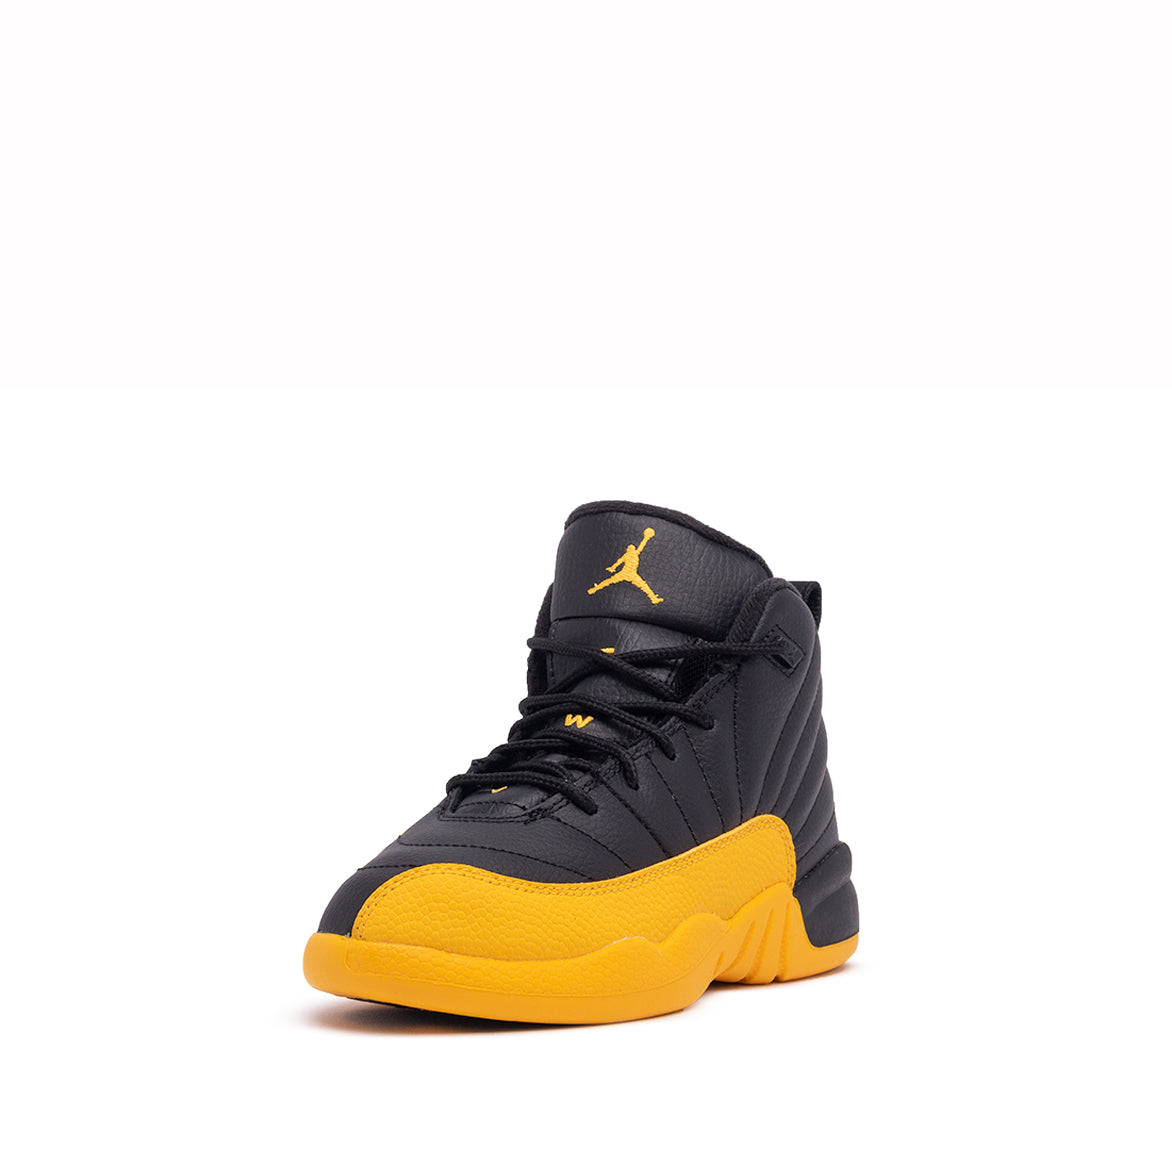 "AIR JORDAN 12 RETRO (PS) ""UNIVERSITY GOLD"""